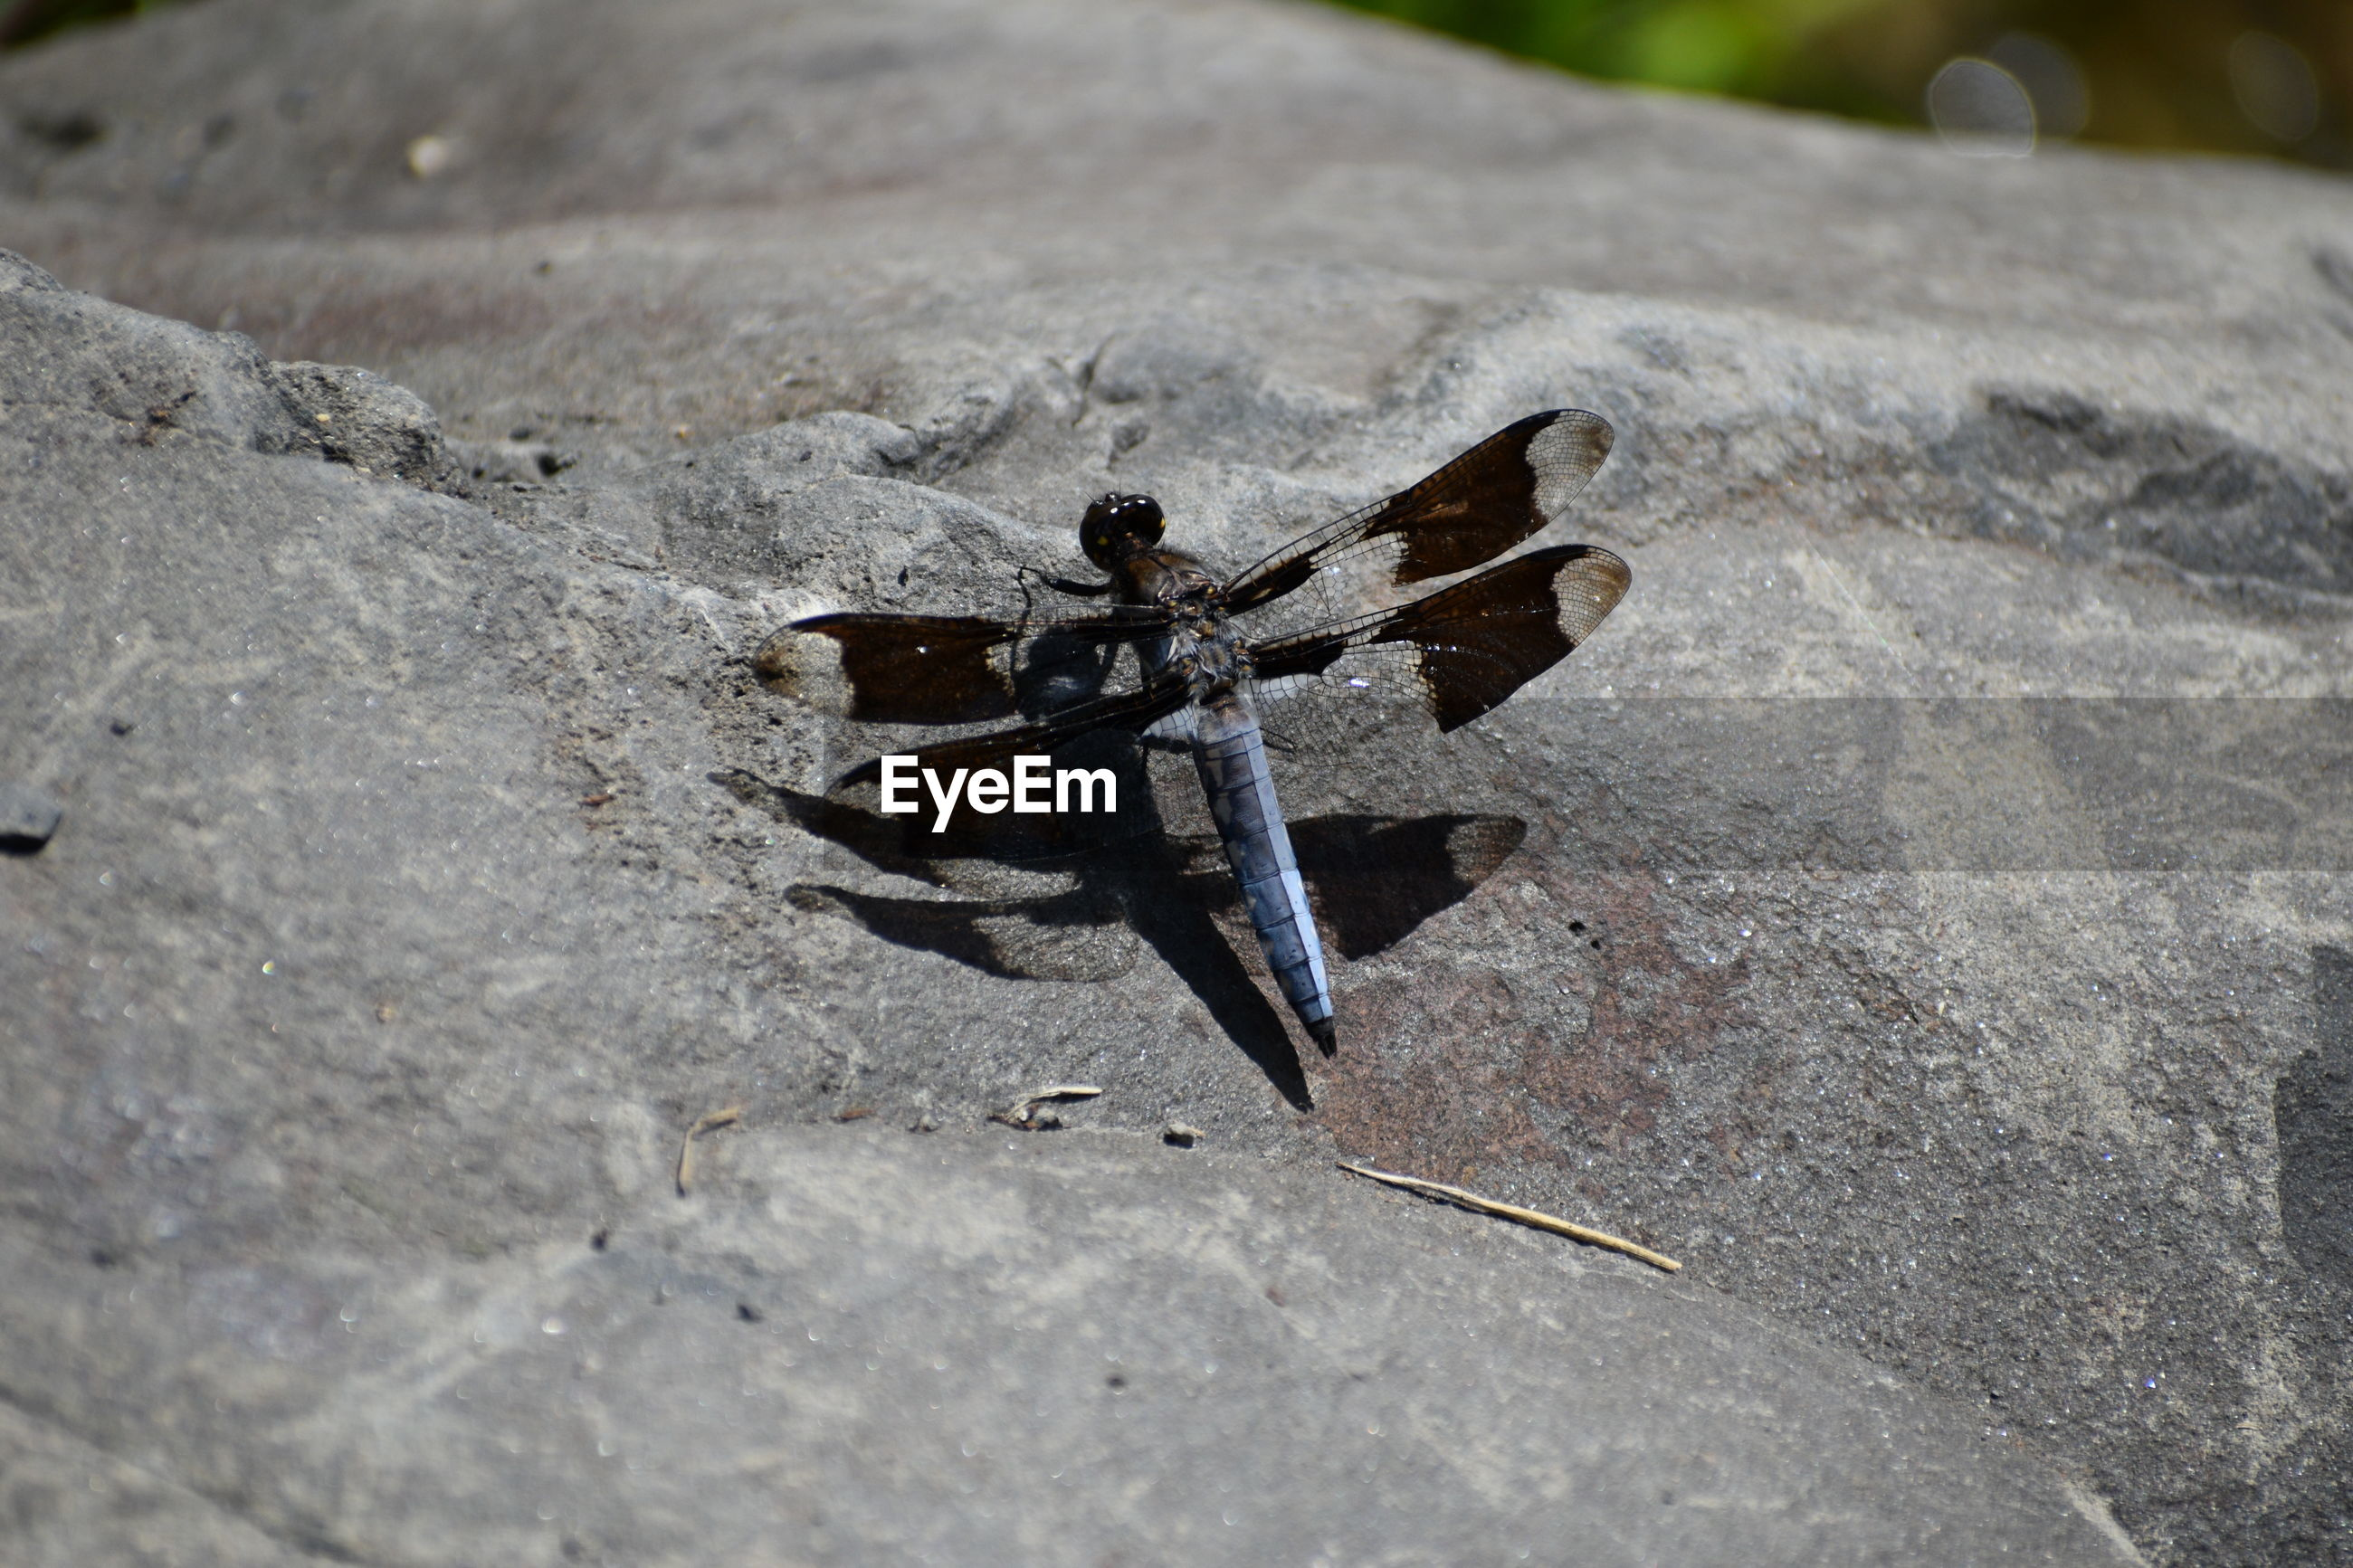 HIGH ANGLE VIEW OF BUTTERFLY ON ROCK